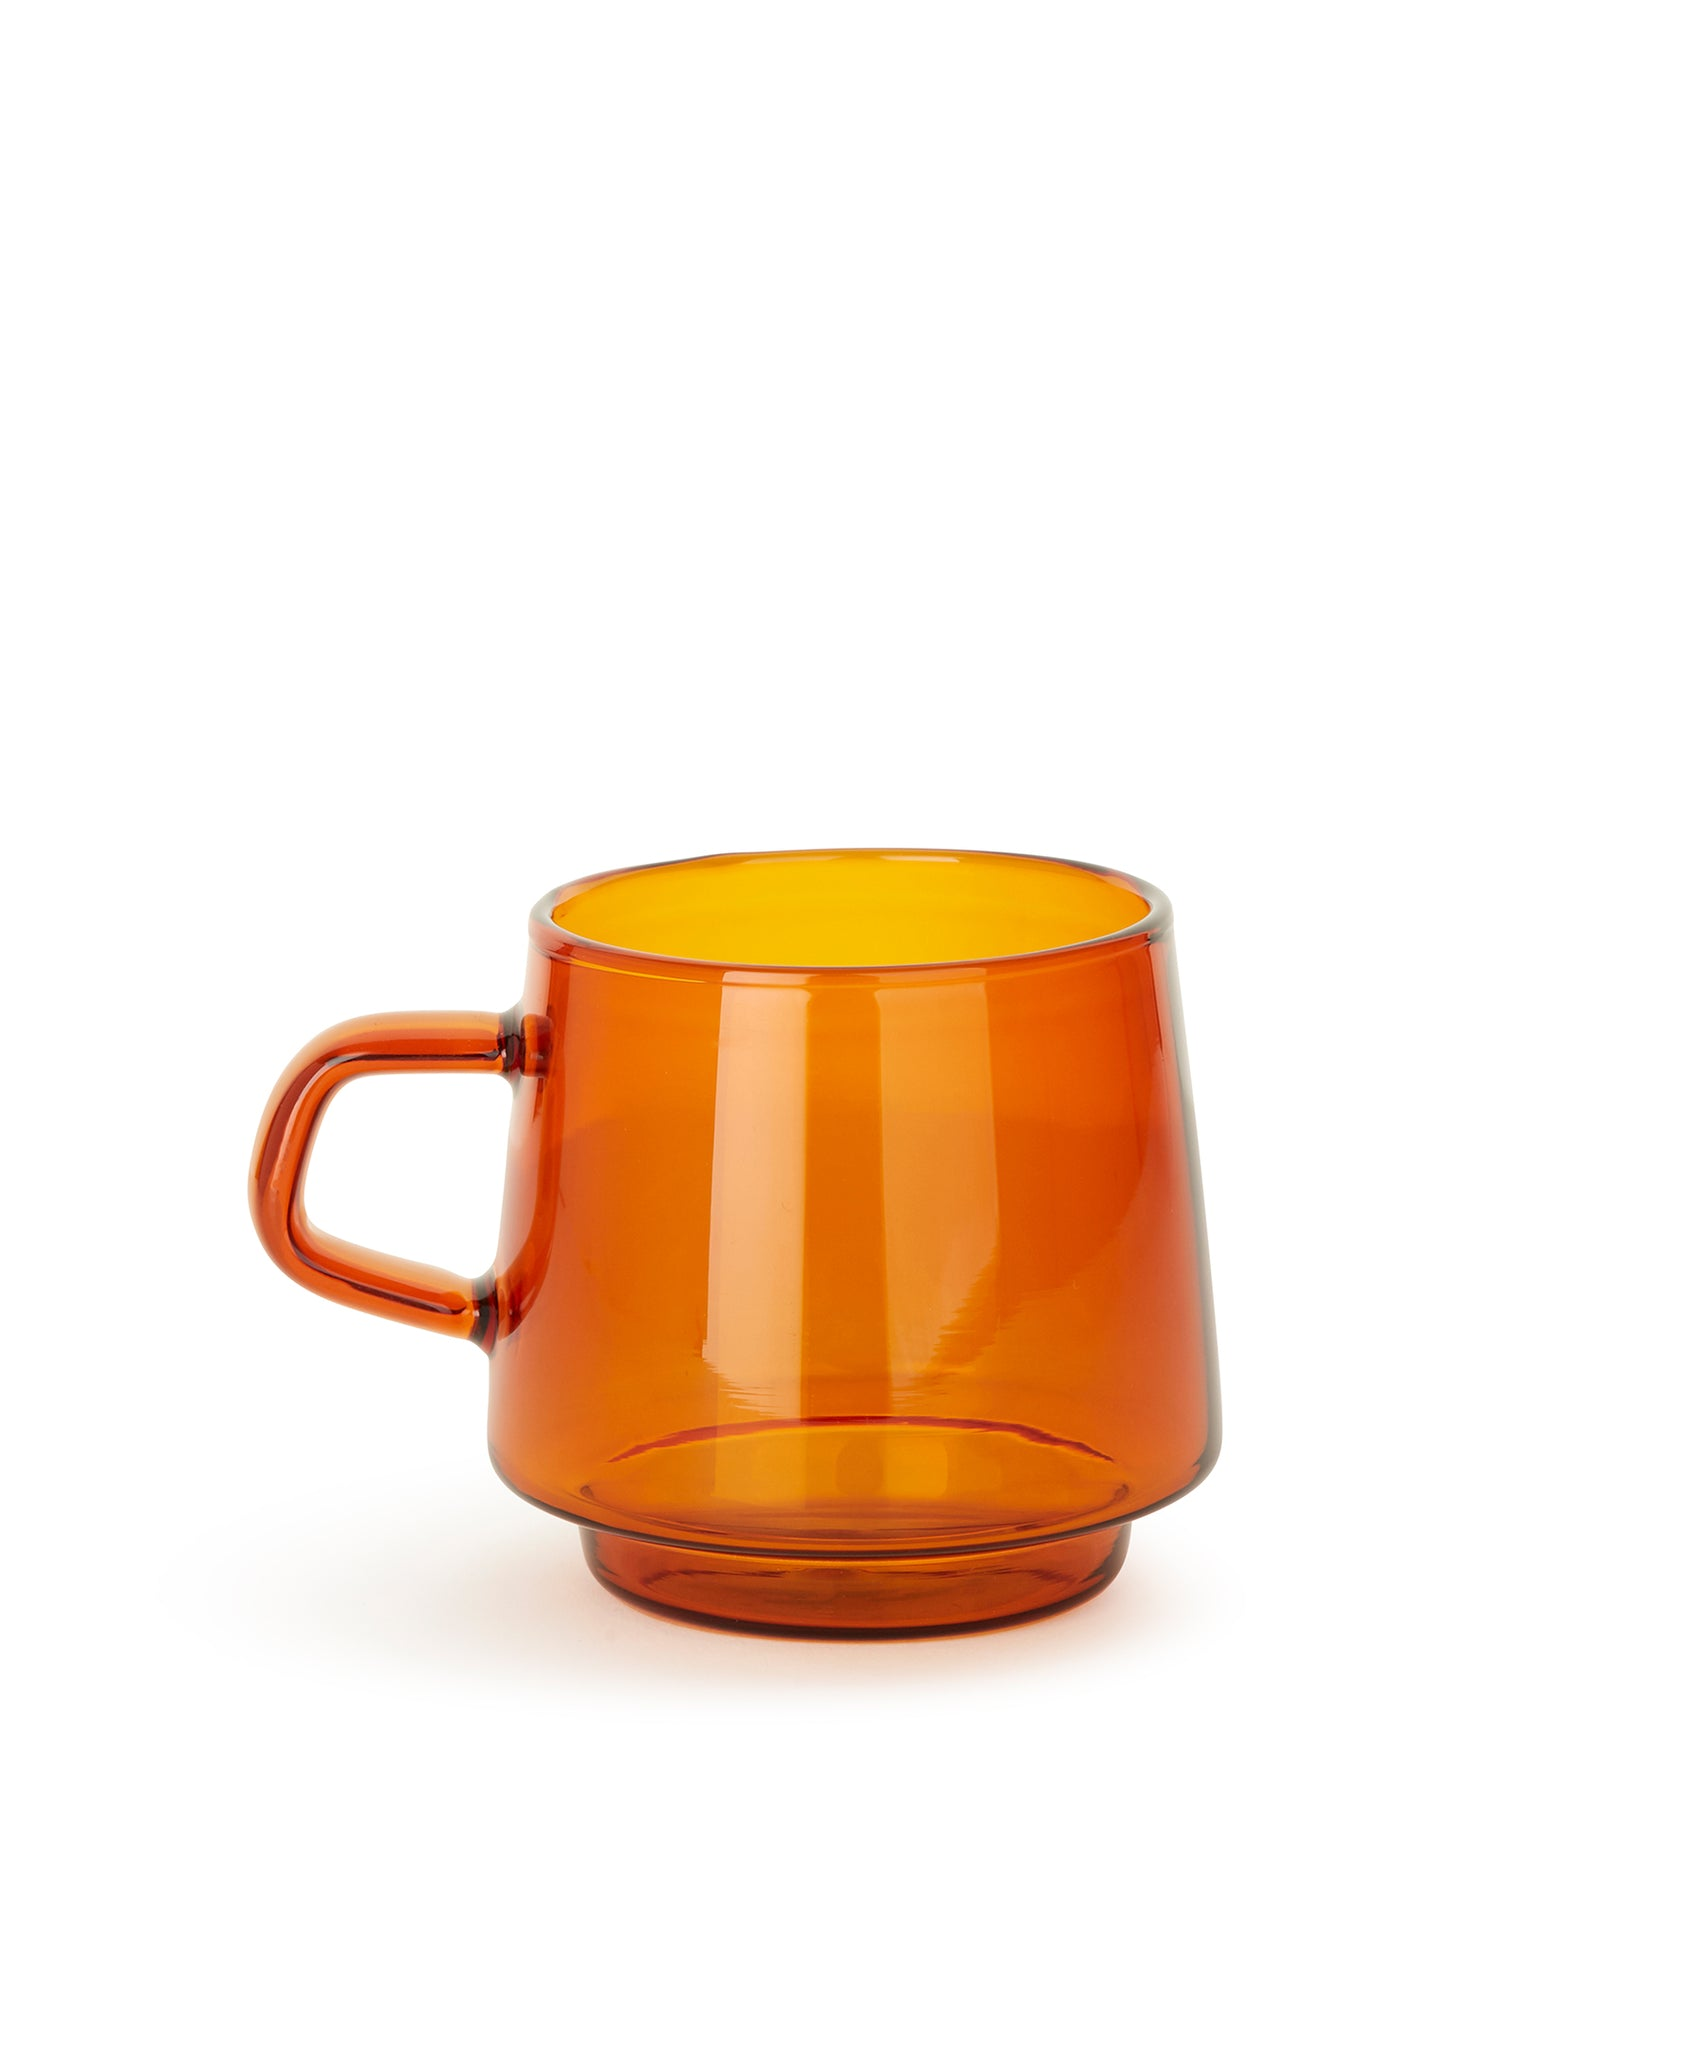 Sepia Mug 340ml by Kinto